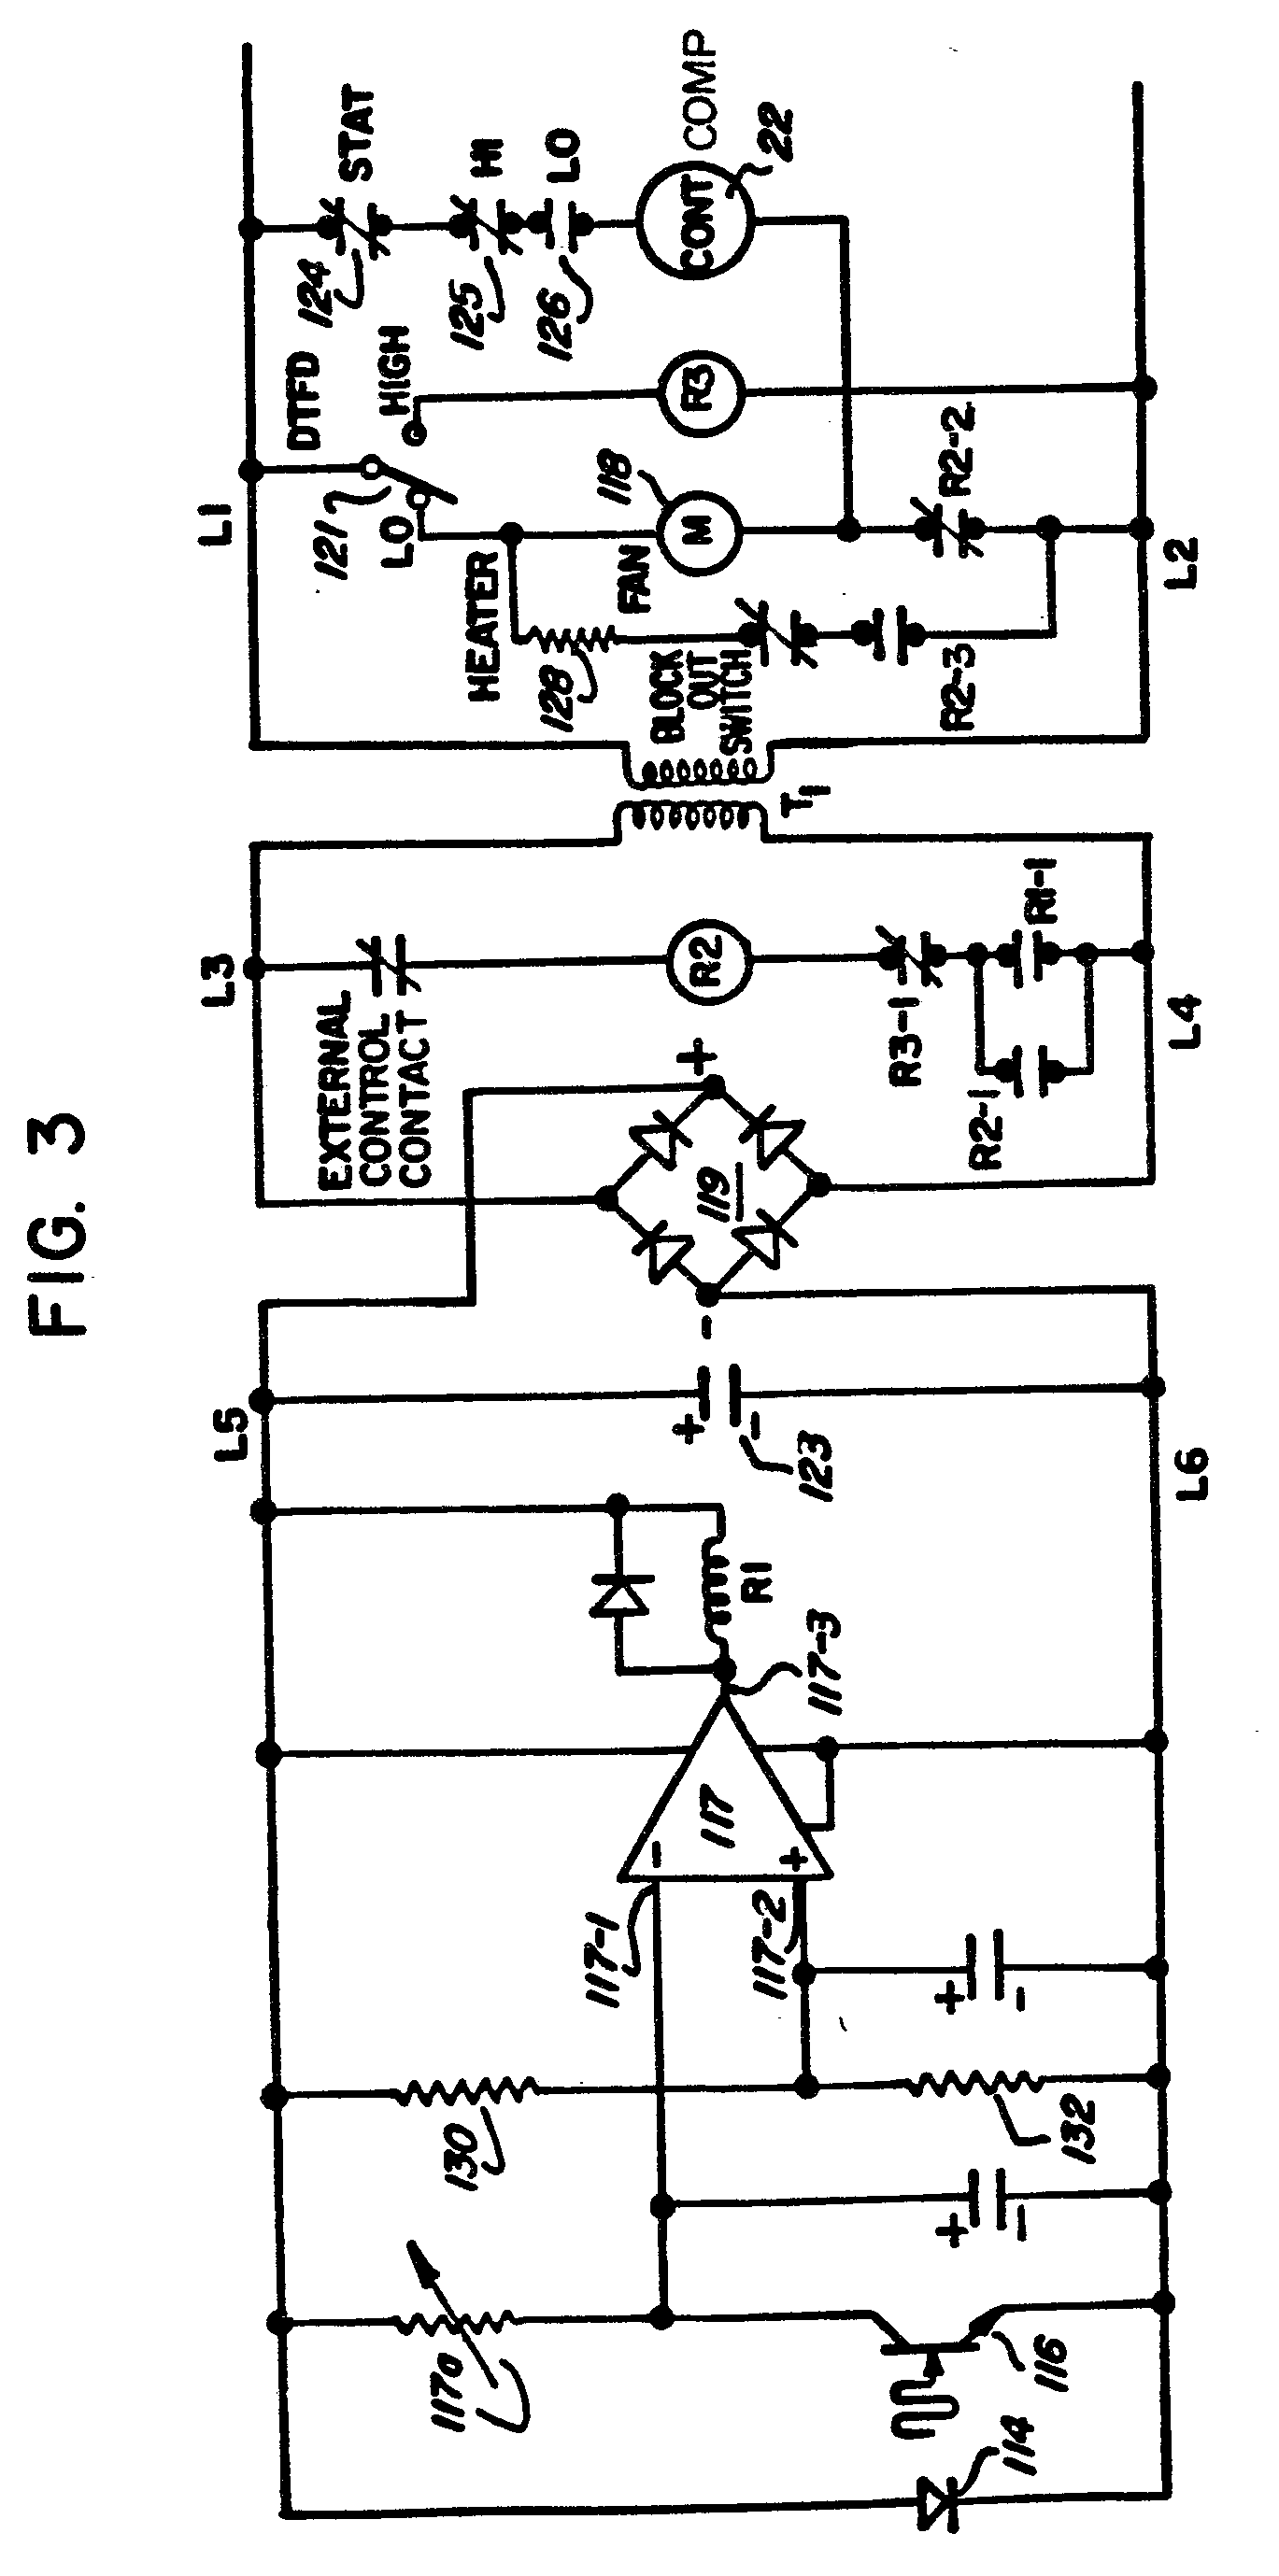 hight resolution of imgf0002 patent ep0066862a1 demand defrost system google patents defrost termination fan delay switch wiring diagram at